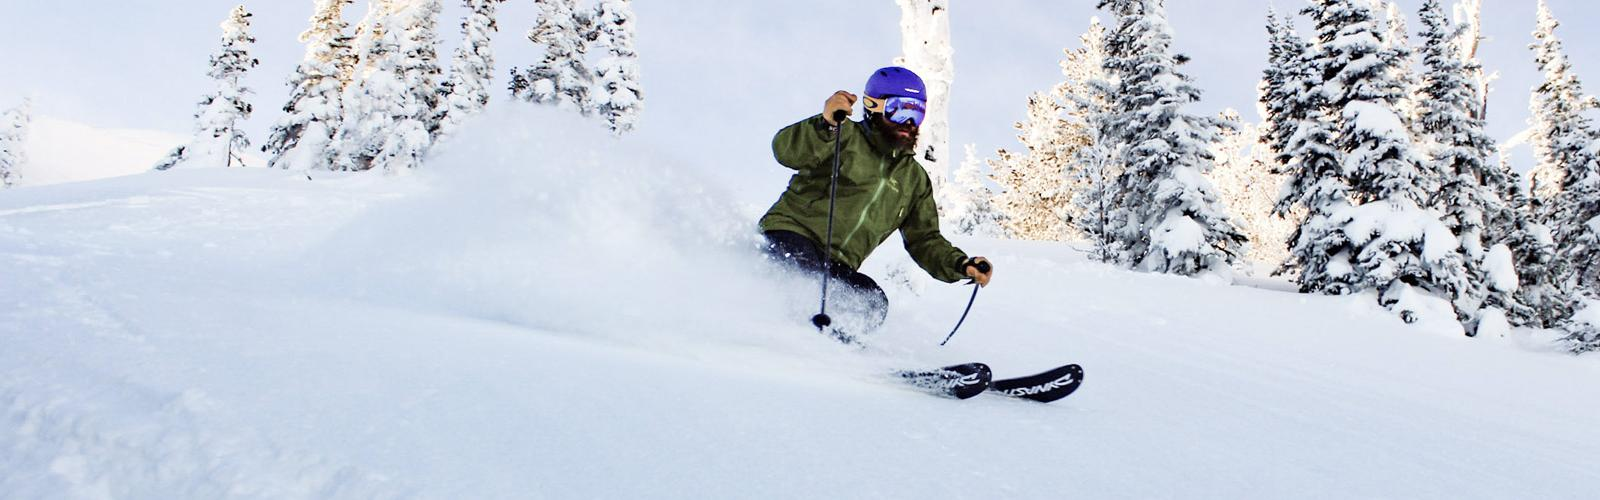 Skier making turn in powder with trees behind